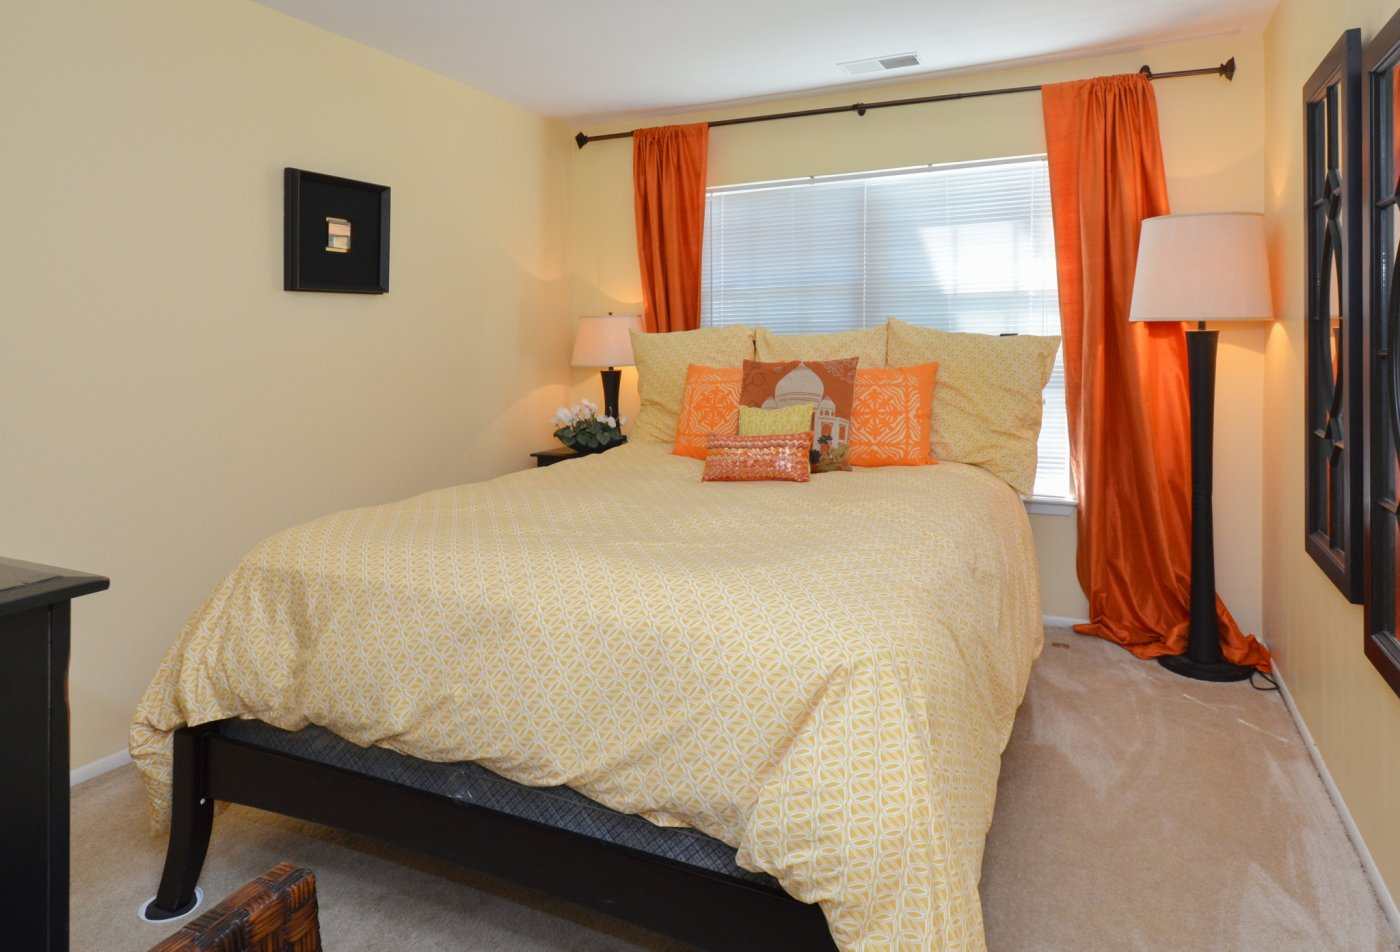 Spacious Master Bedroom | Apartments Homes for rent in Laurel, MD | Spring House Apartments